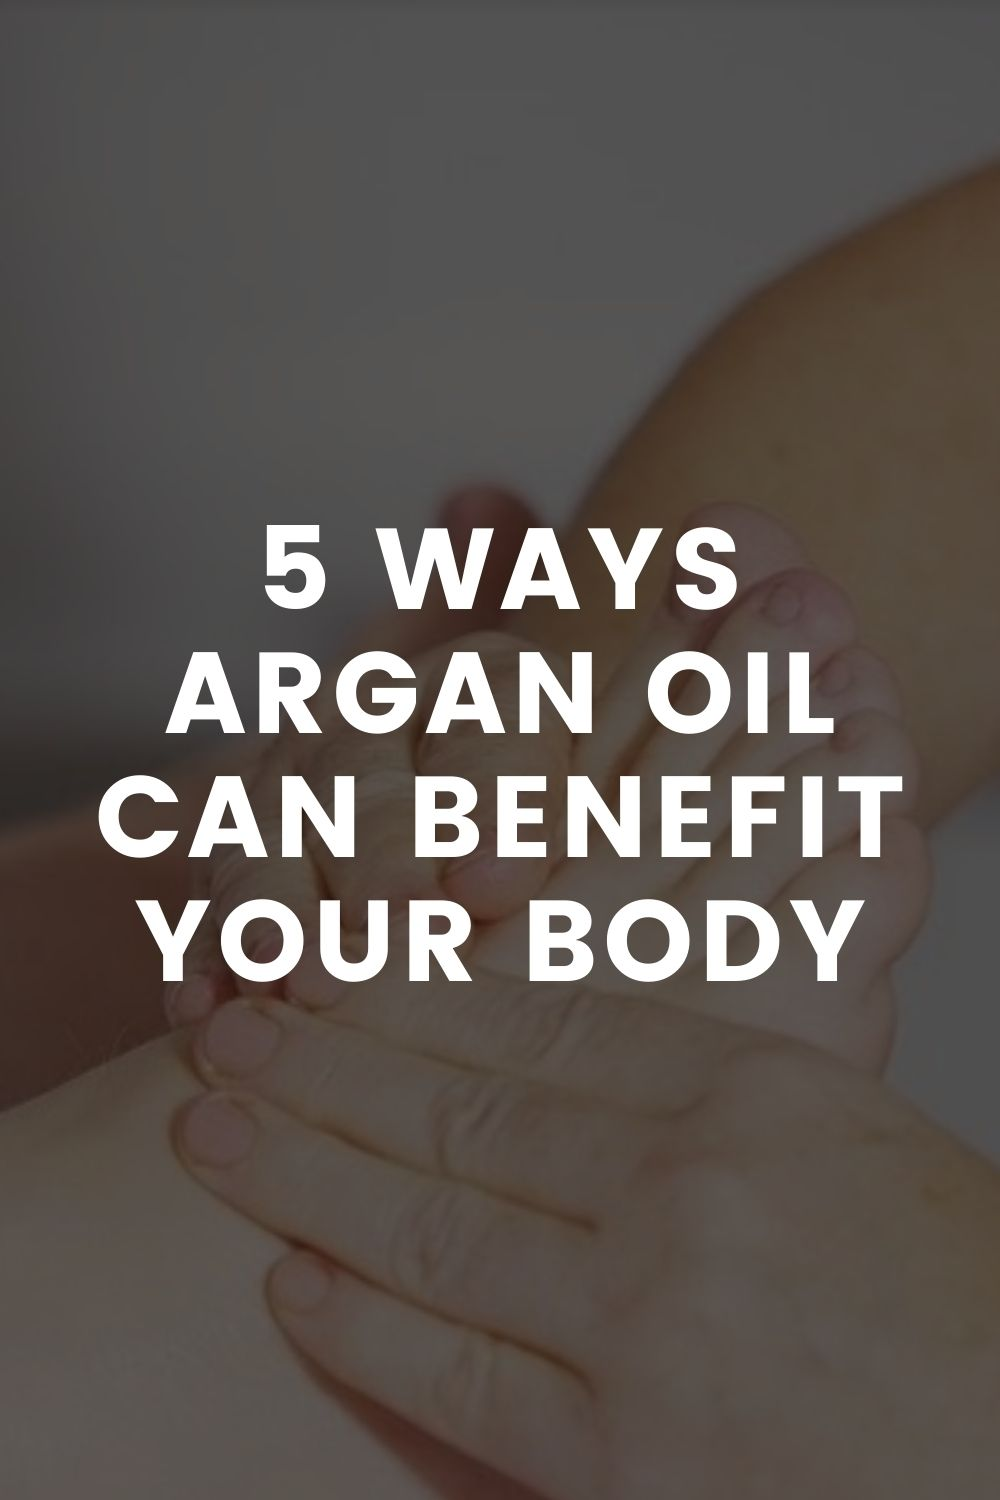 5 Ways Argan Oil Can Benefit Your Body